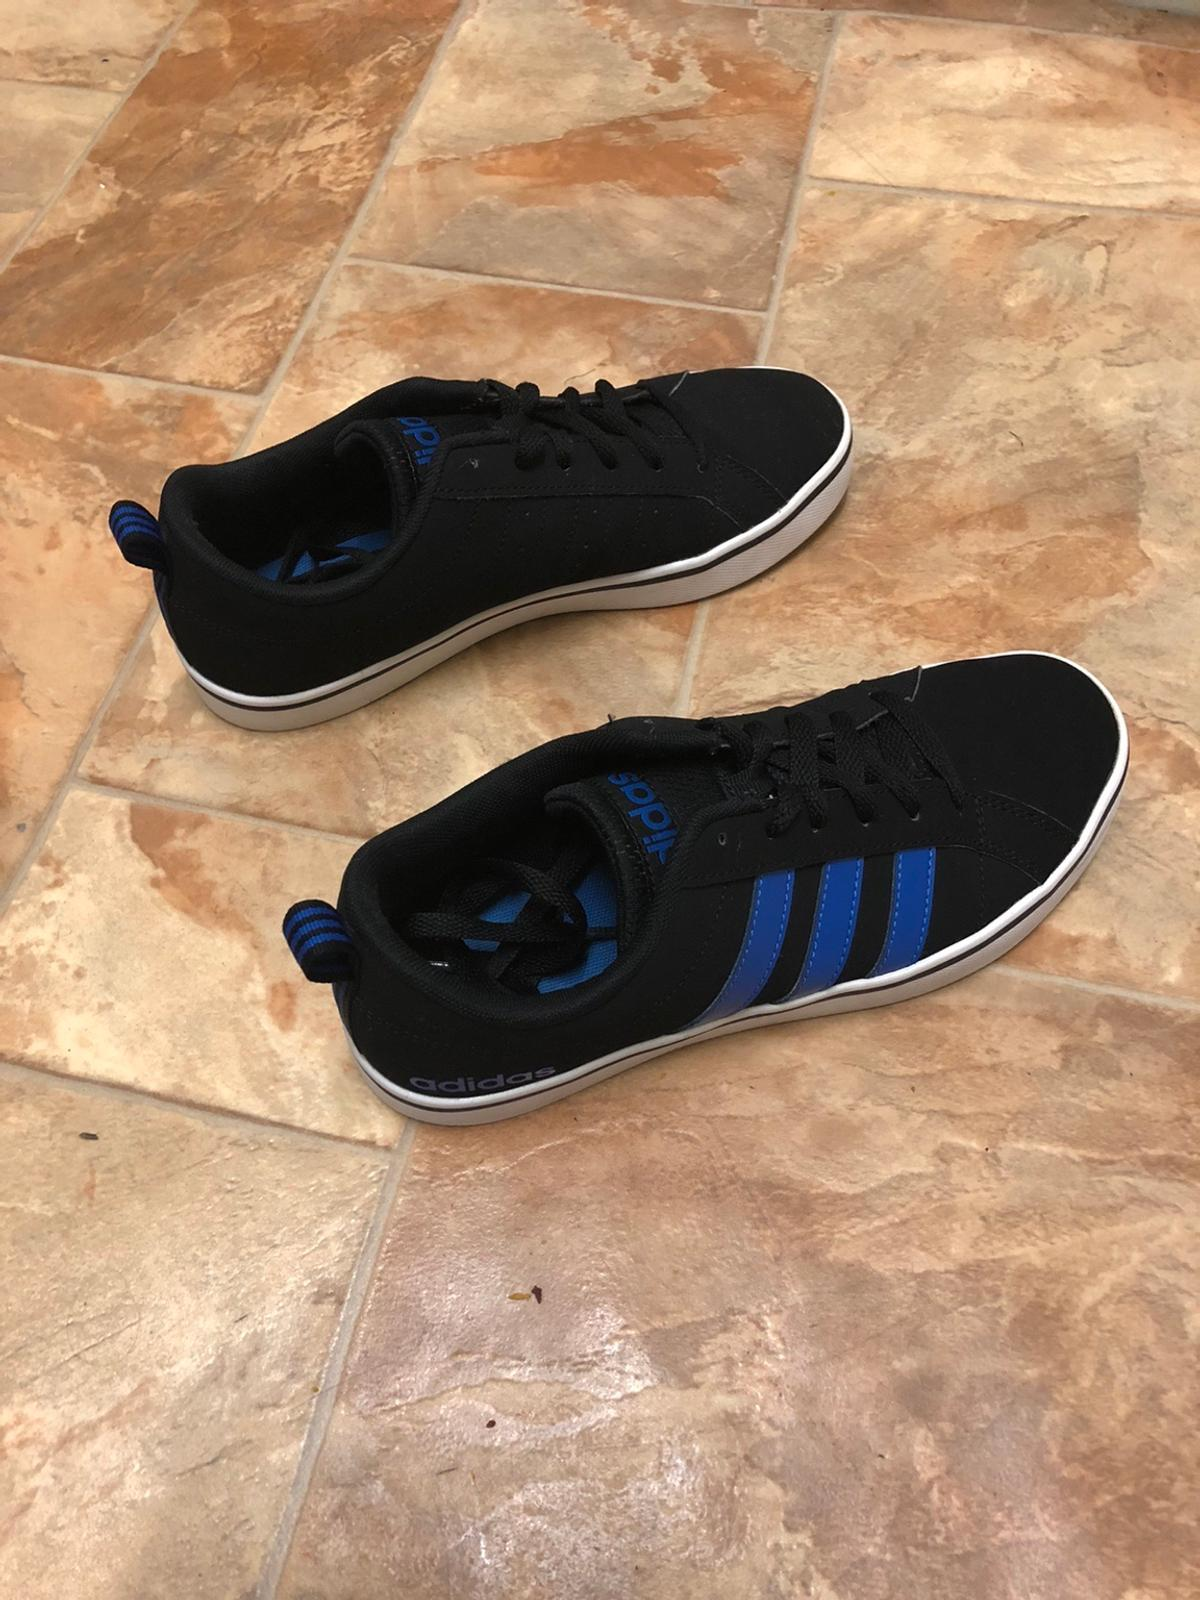 Size 6, men's Adidas pace vs nubuck men's trainers. Black and blue striped. Blue insides.  Worn several times but they are in really good condition. Can post them as first class and I will send the receipt for you or you can collect.